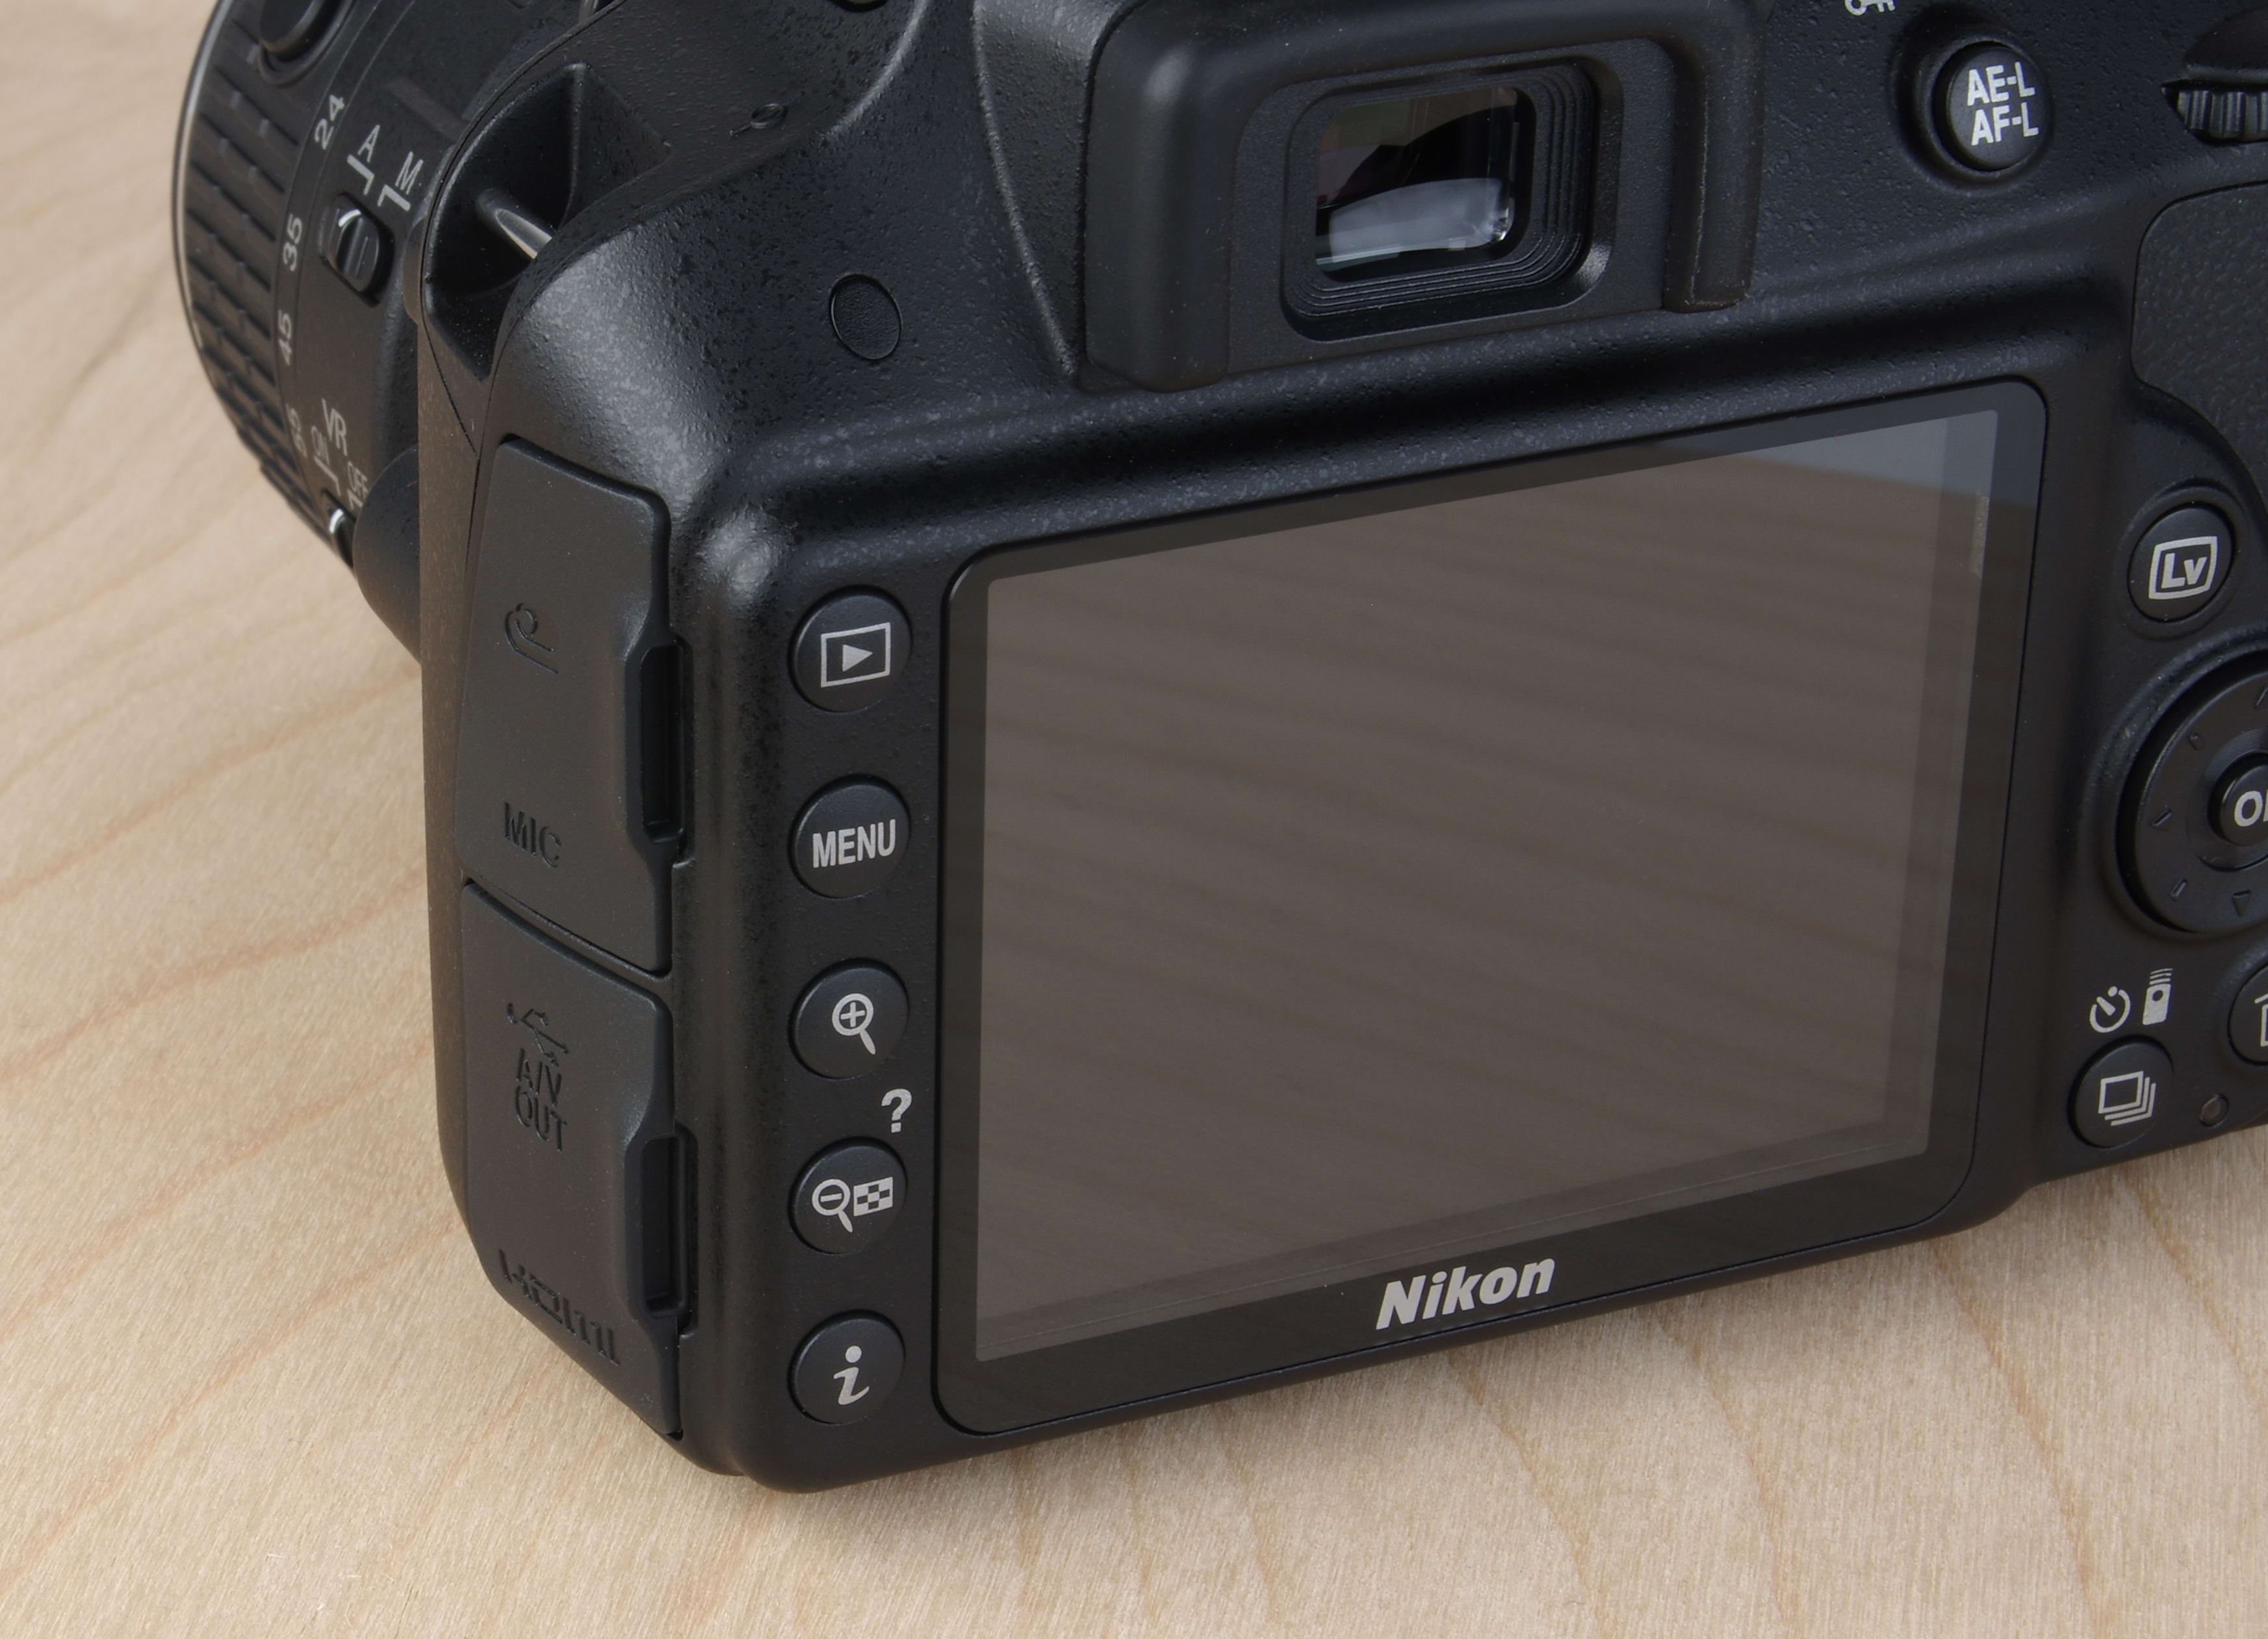 A picture of the Nikon D3300's rear controls.